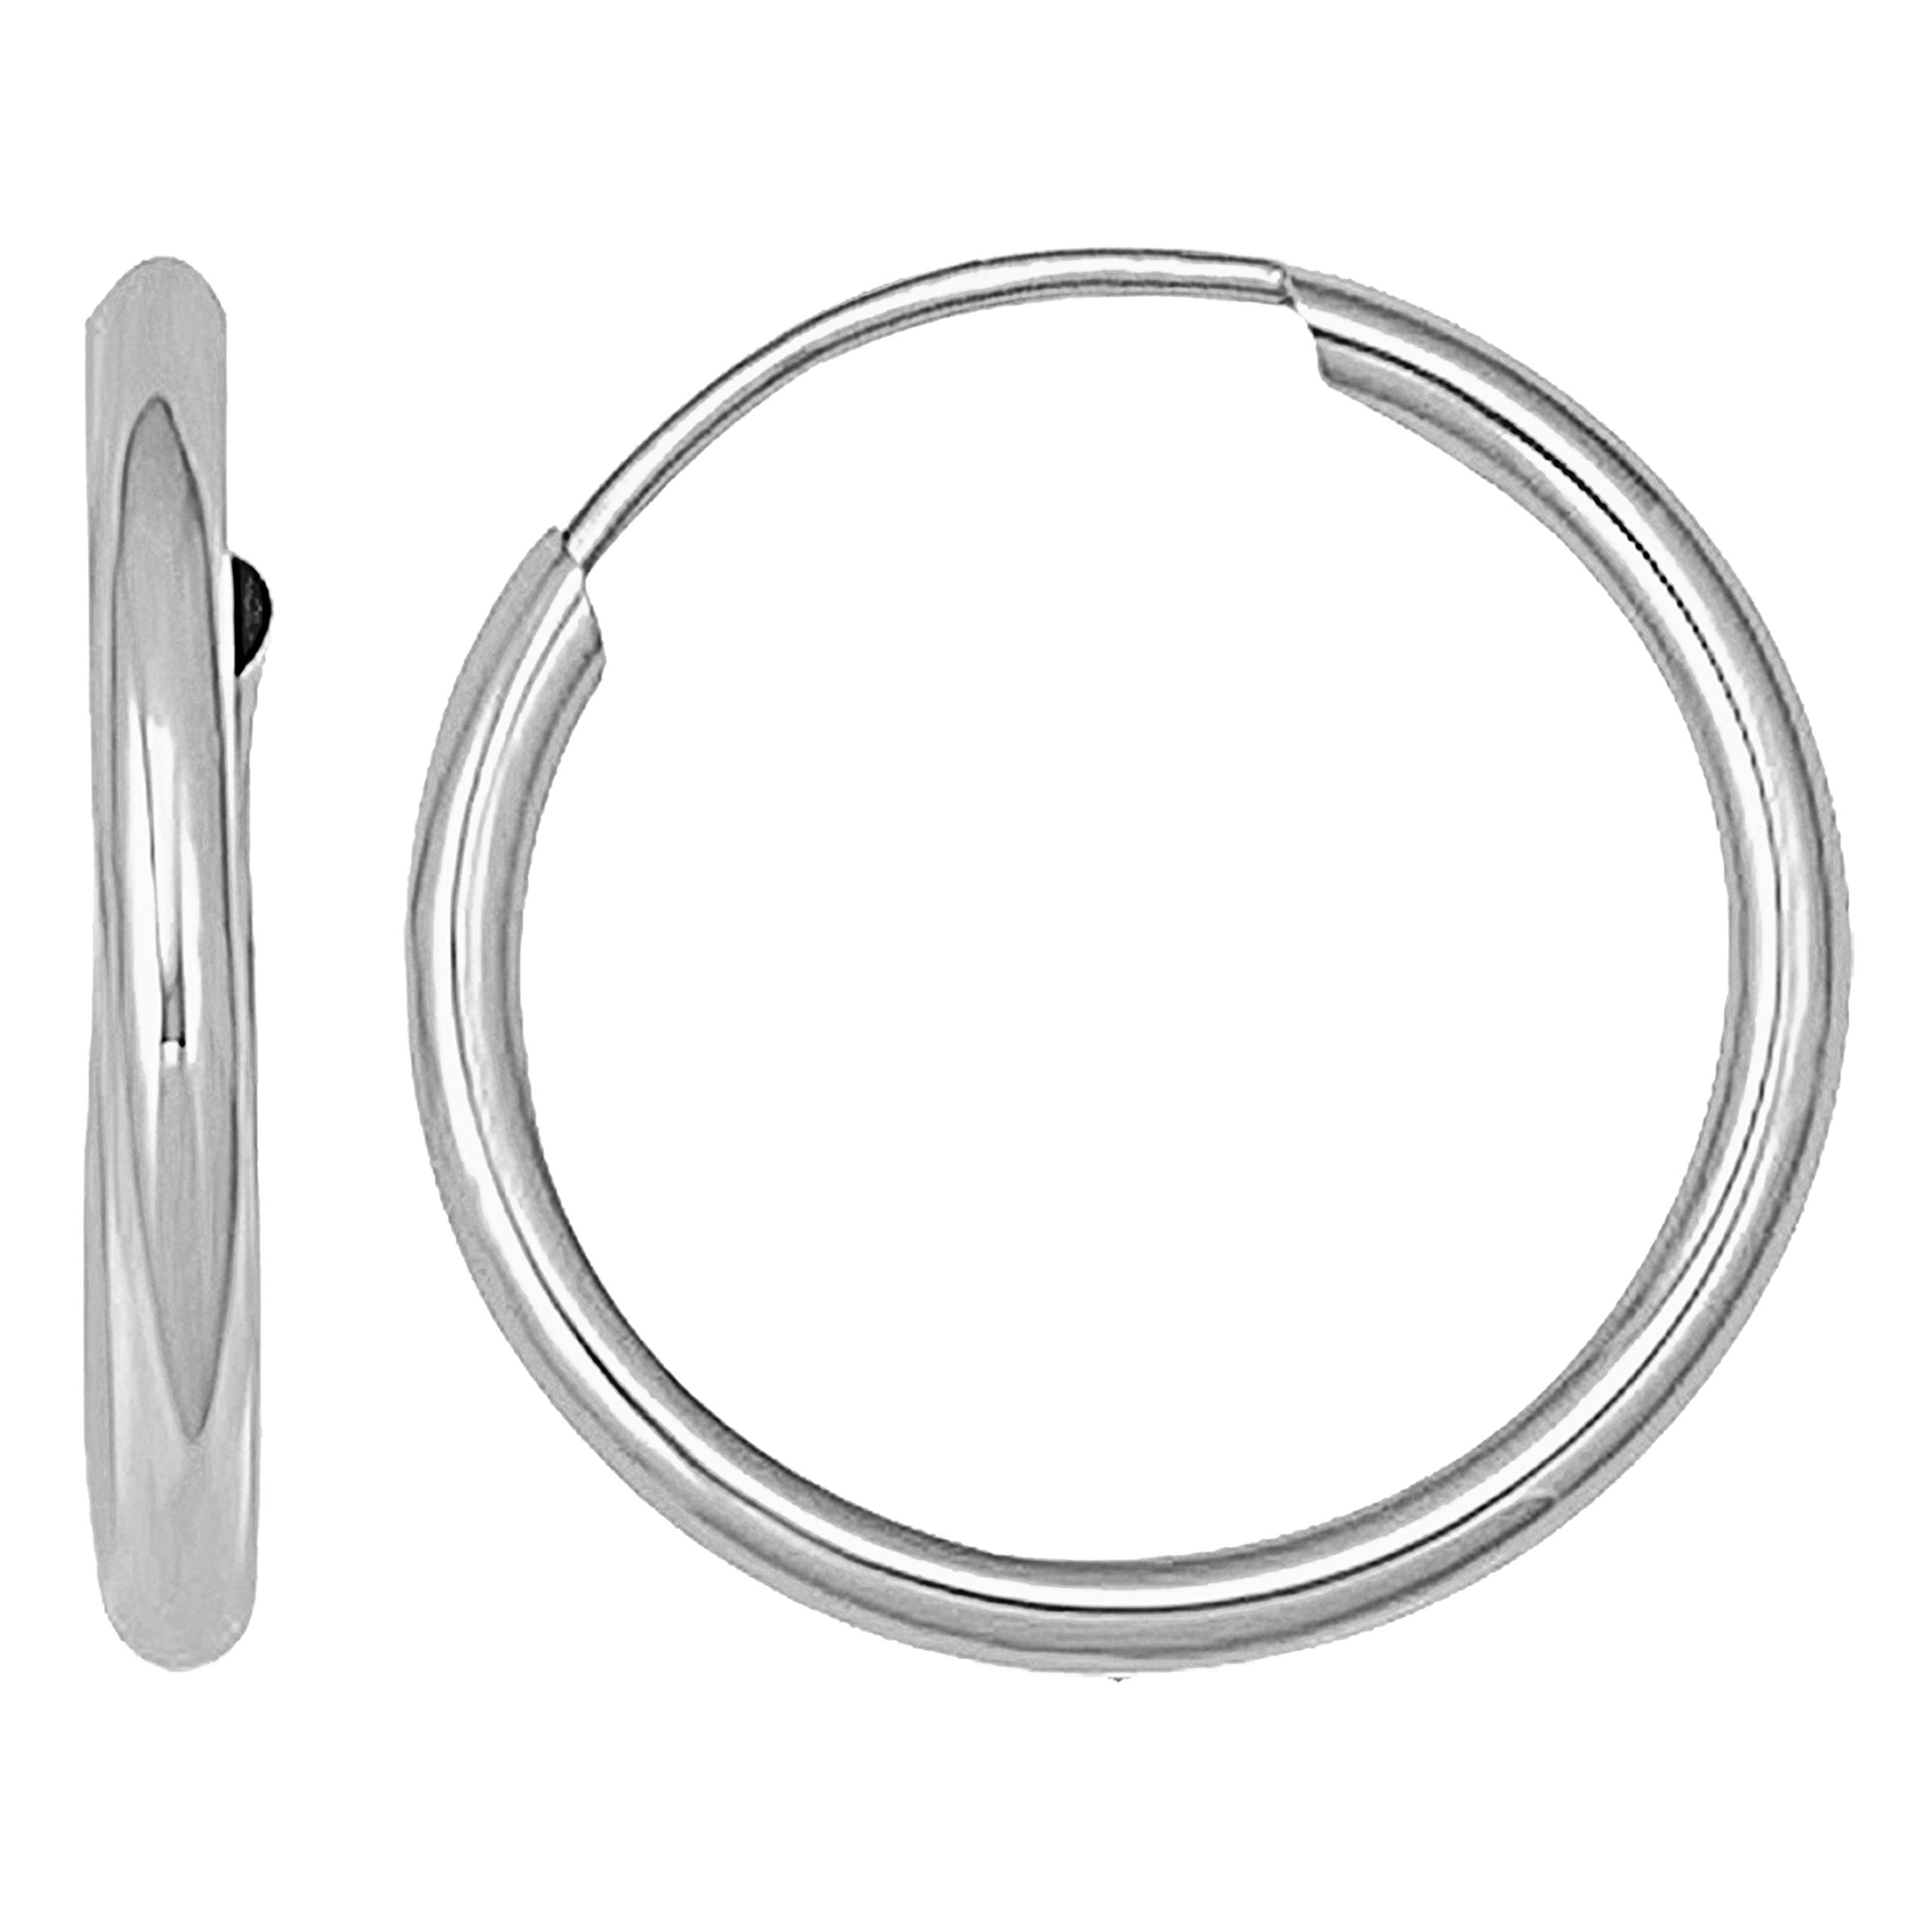 14K Solid White Gold Endless Loop Hoop Timeless Earrings 2 mm Gauge/Thickness Available in Multiple Diameters - Segment Septum Lip Nose Round Hoop Tragus Helix Cartilage (2.00 Inch)